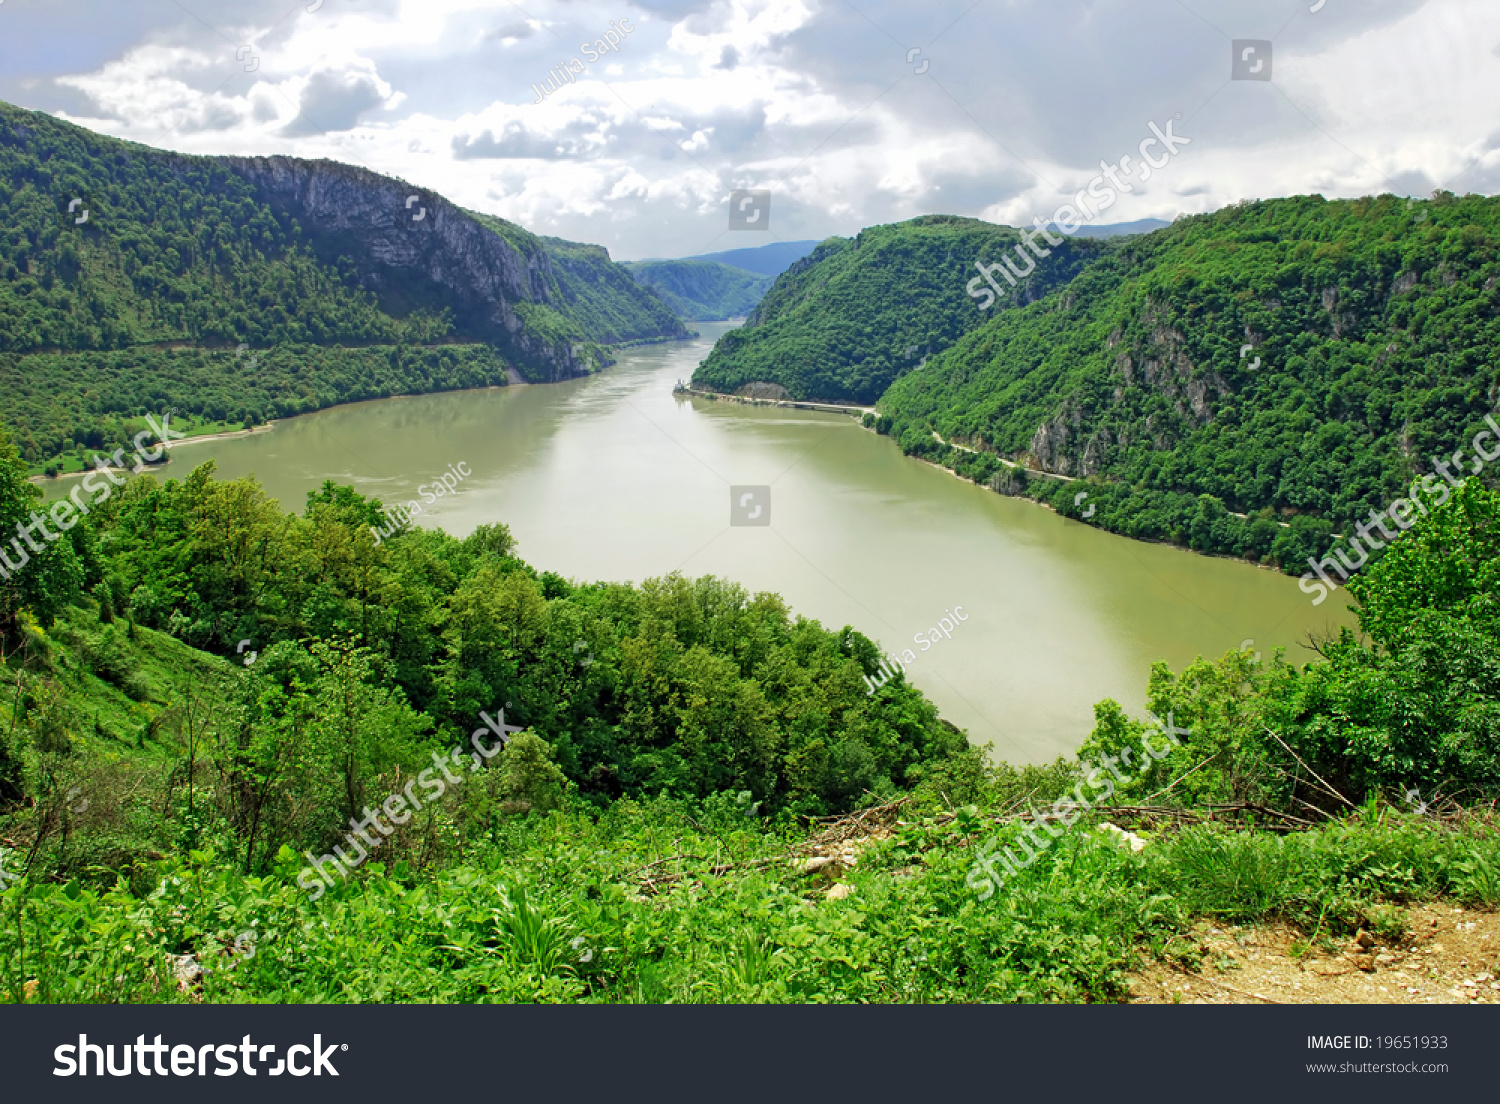 danube between mountains and - photo #11